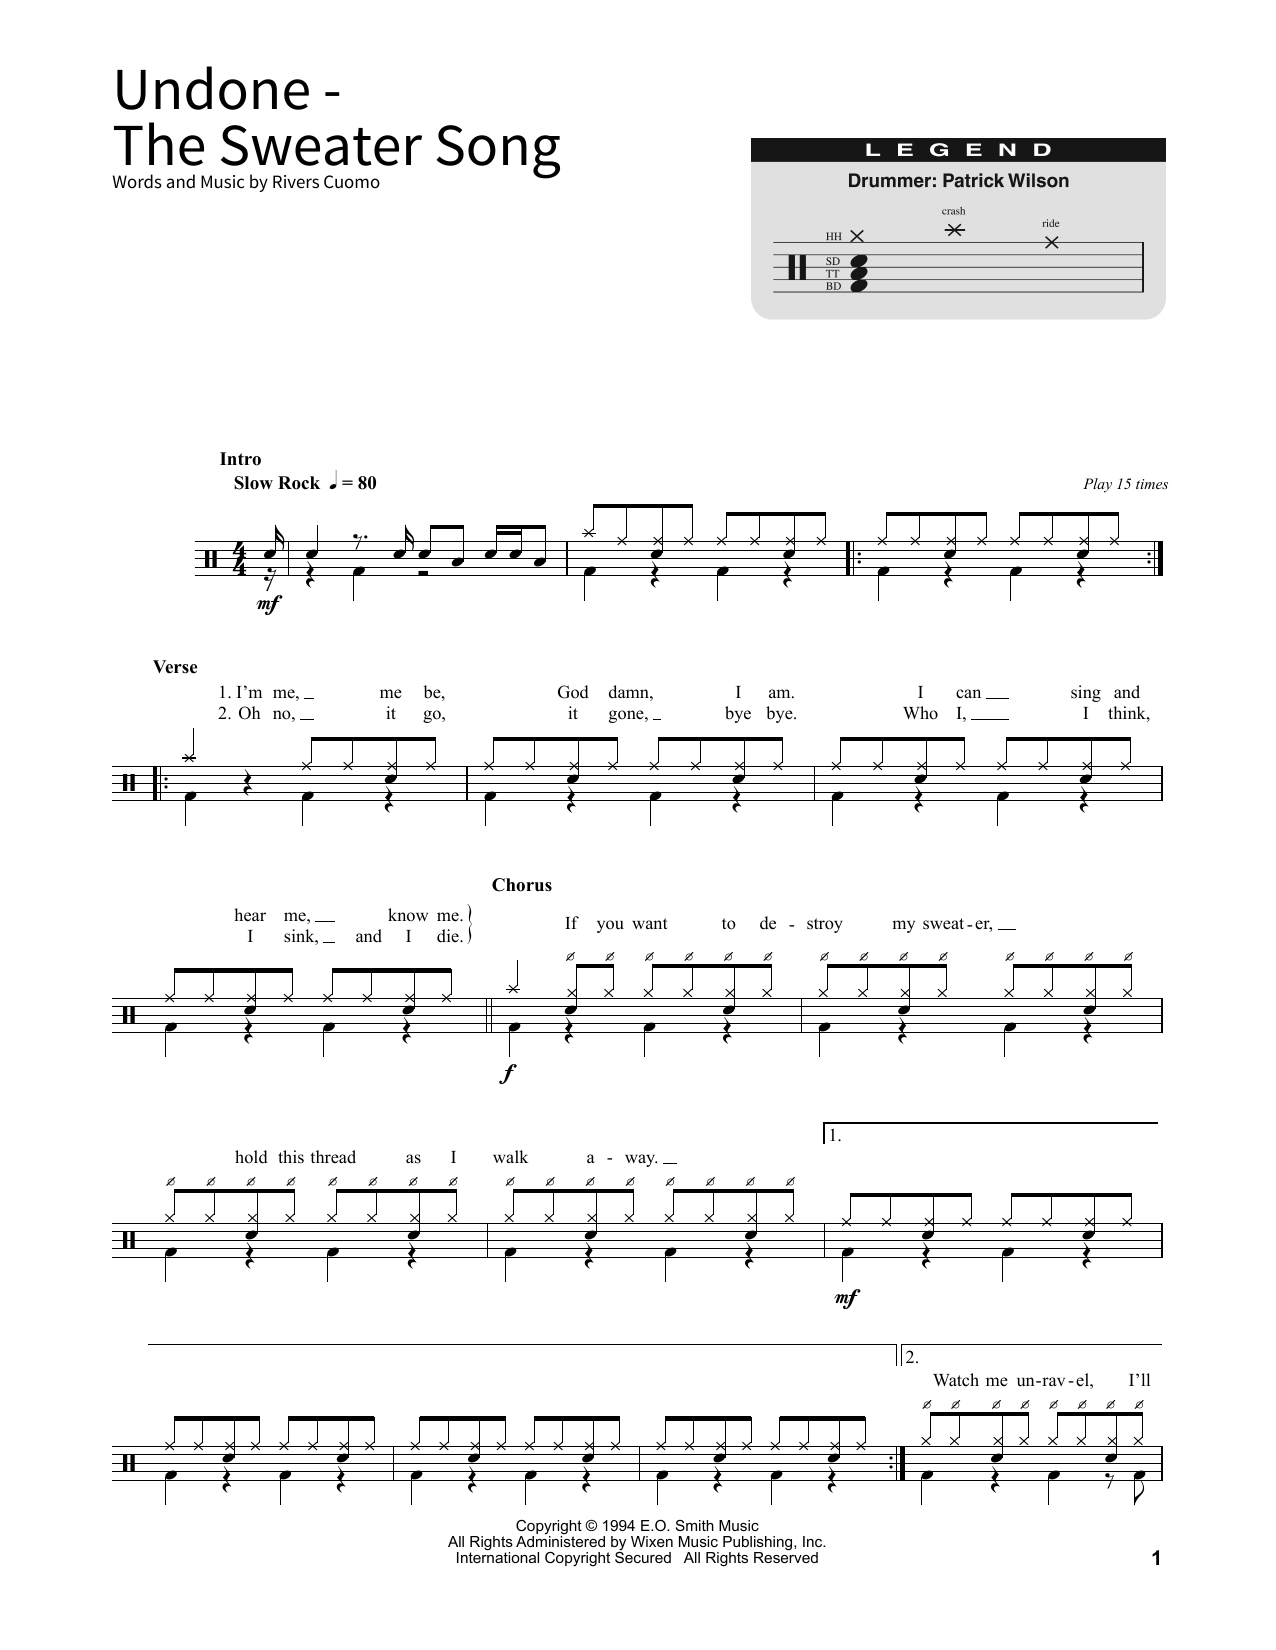 Undone - The Sweater Song Sheet Music